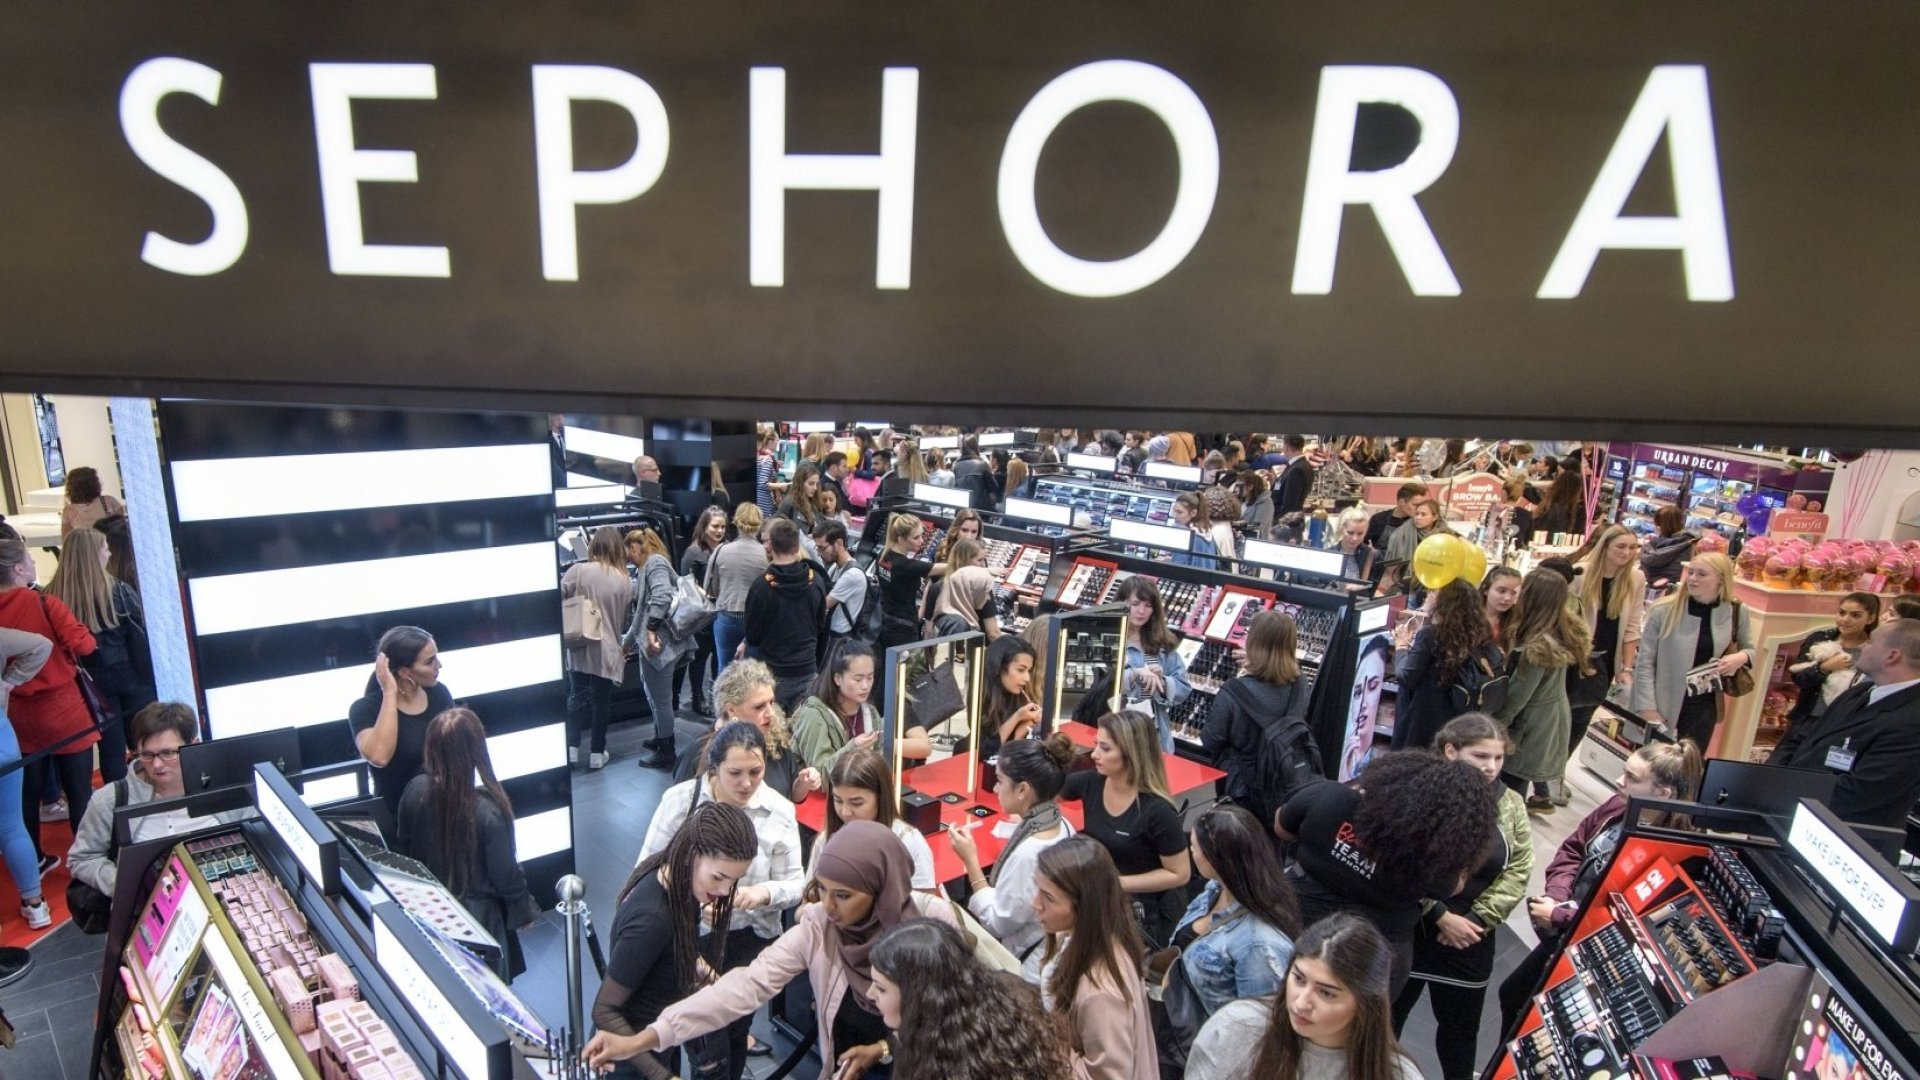 Sephora to Close Stores for Companywide Diversity Training. Research Shows That Might Not Be a Good Idea